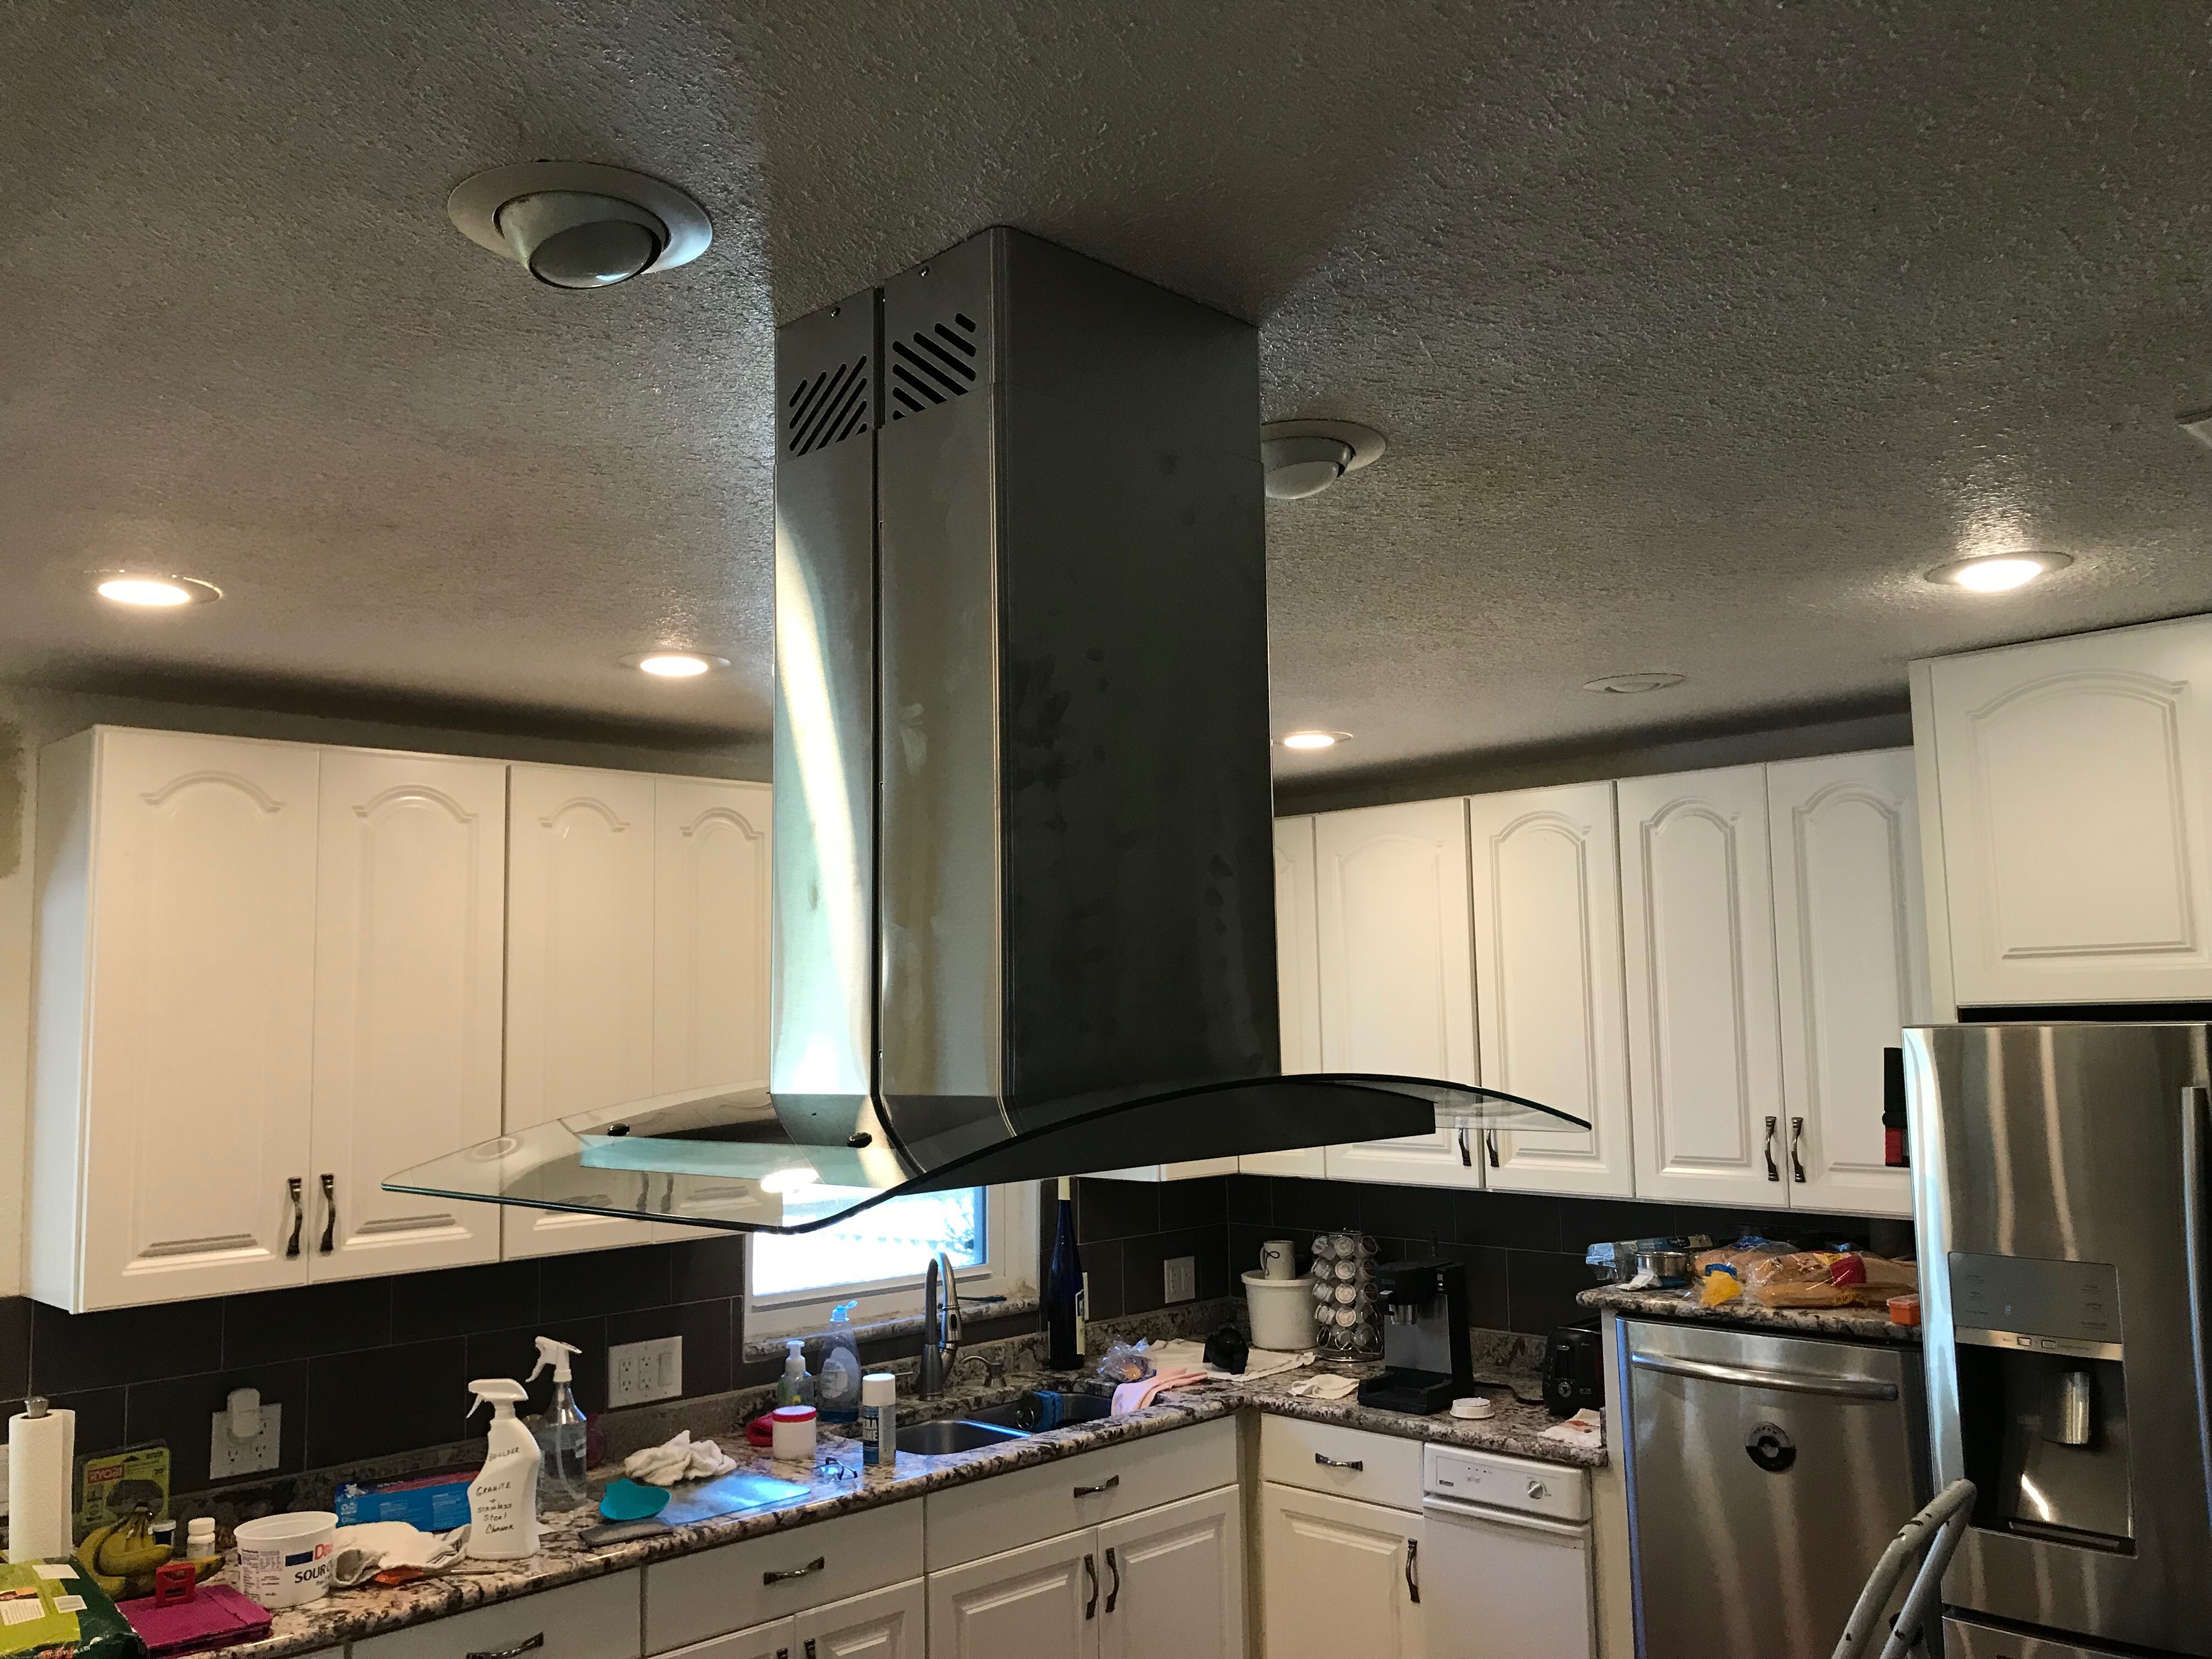 Installation of new range hood complete